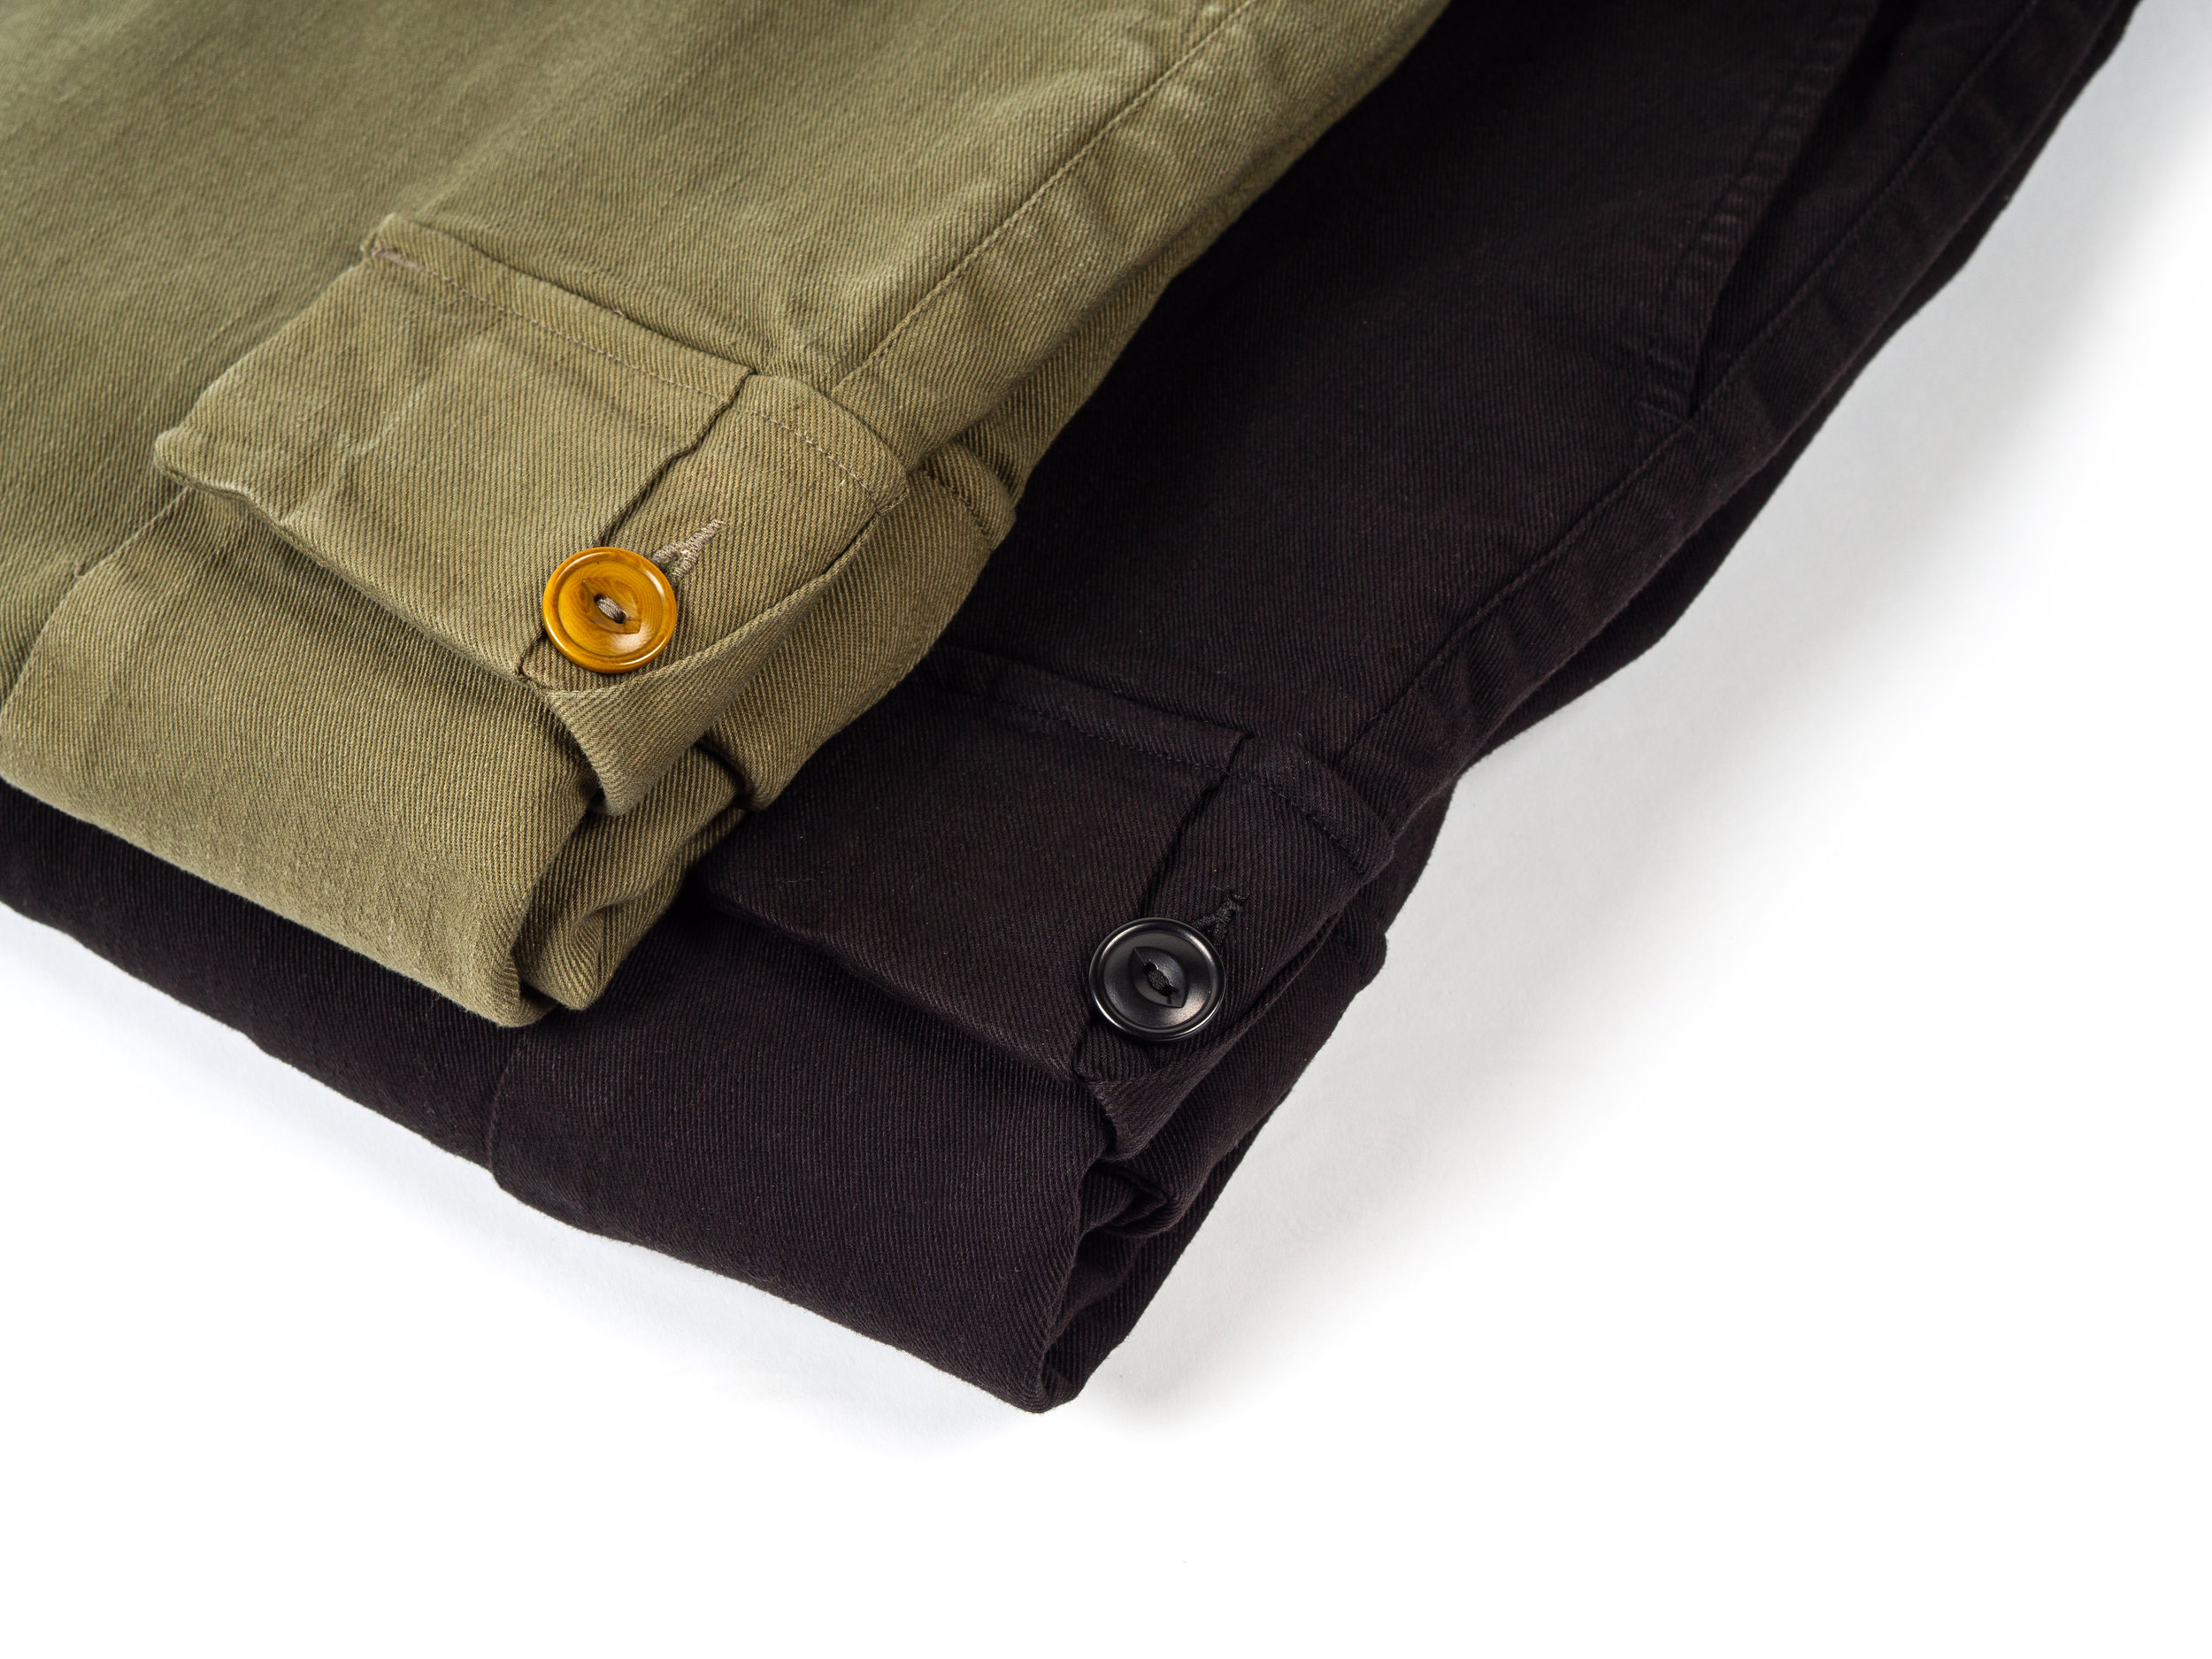 Outclass Garment Dyed Chinos - These Outclass Chinos were garment dyed and washed, post-construction, for a broken-in feel and a soft, uniform hue. They are blended with some stretch for mobility and comfort. The Chinos are a classic slim straight, and the Expedition Pants have cargo pockets, a full seat, and a sharp taper below the darted knees. Both styles feature double welt rear pockets and corozo nut buttons with a zip fly. Outclass bottoms are all made in Canada.